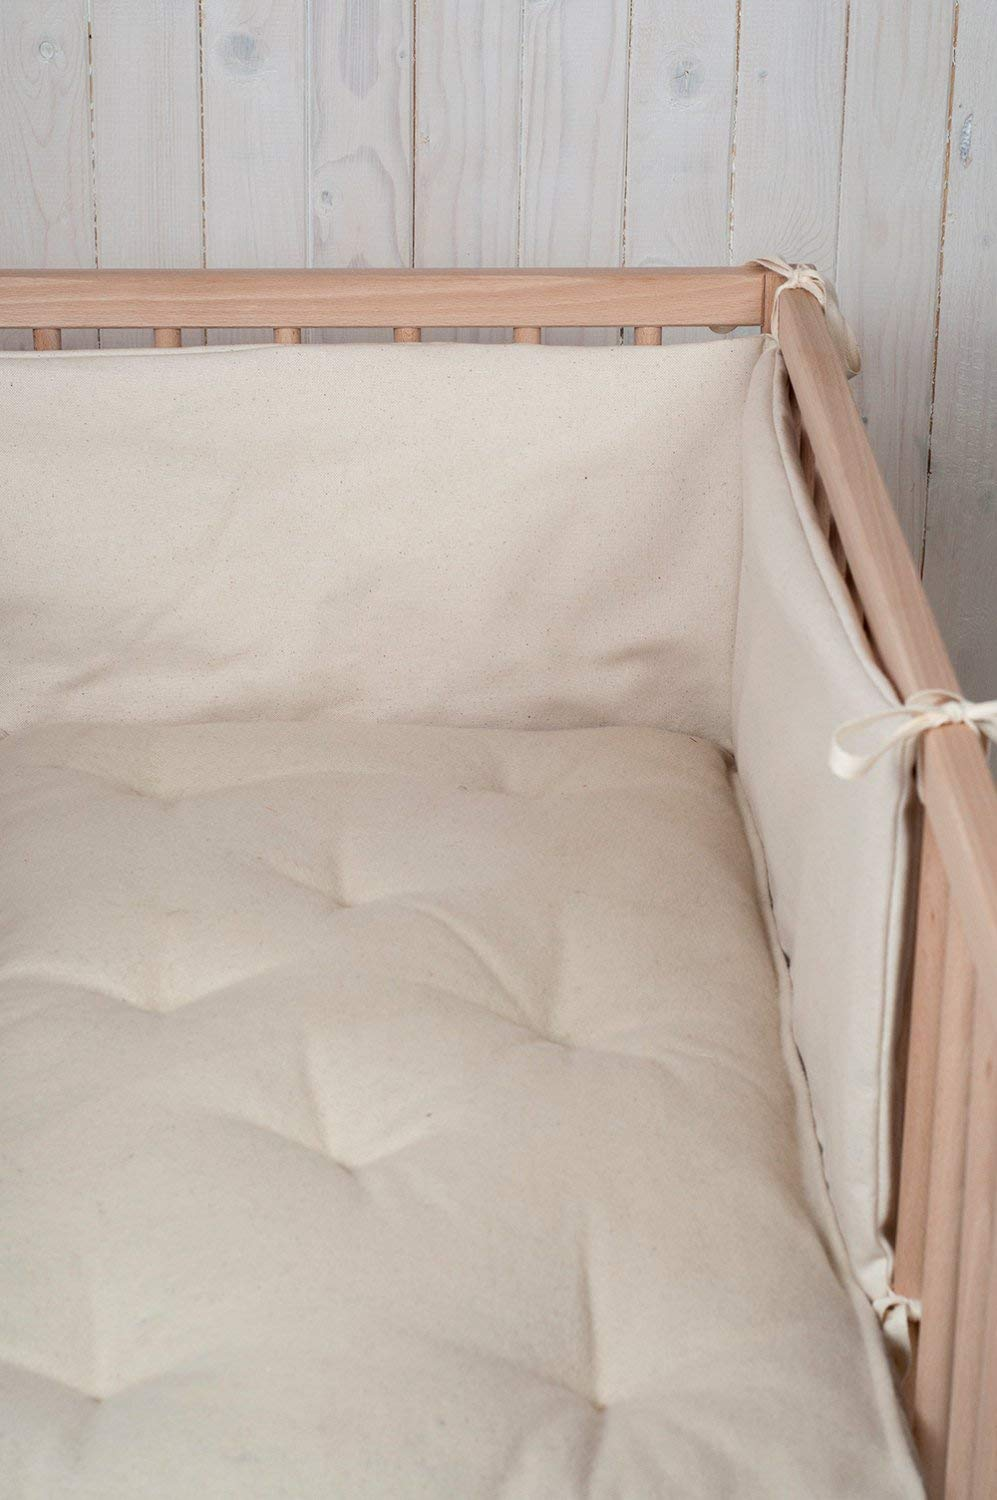 Wool Filled Baby Crib Bumper / 3-sided or 4-sided / Natural Silk, Cotton or Linen Cover / Custom Sizes on Request